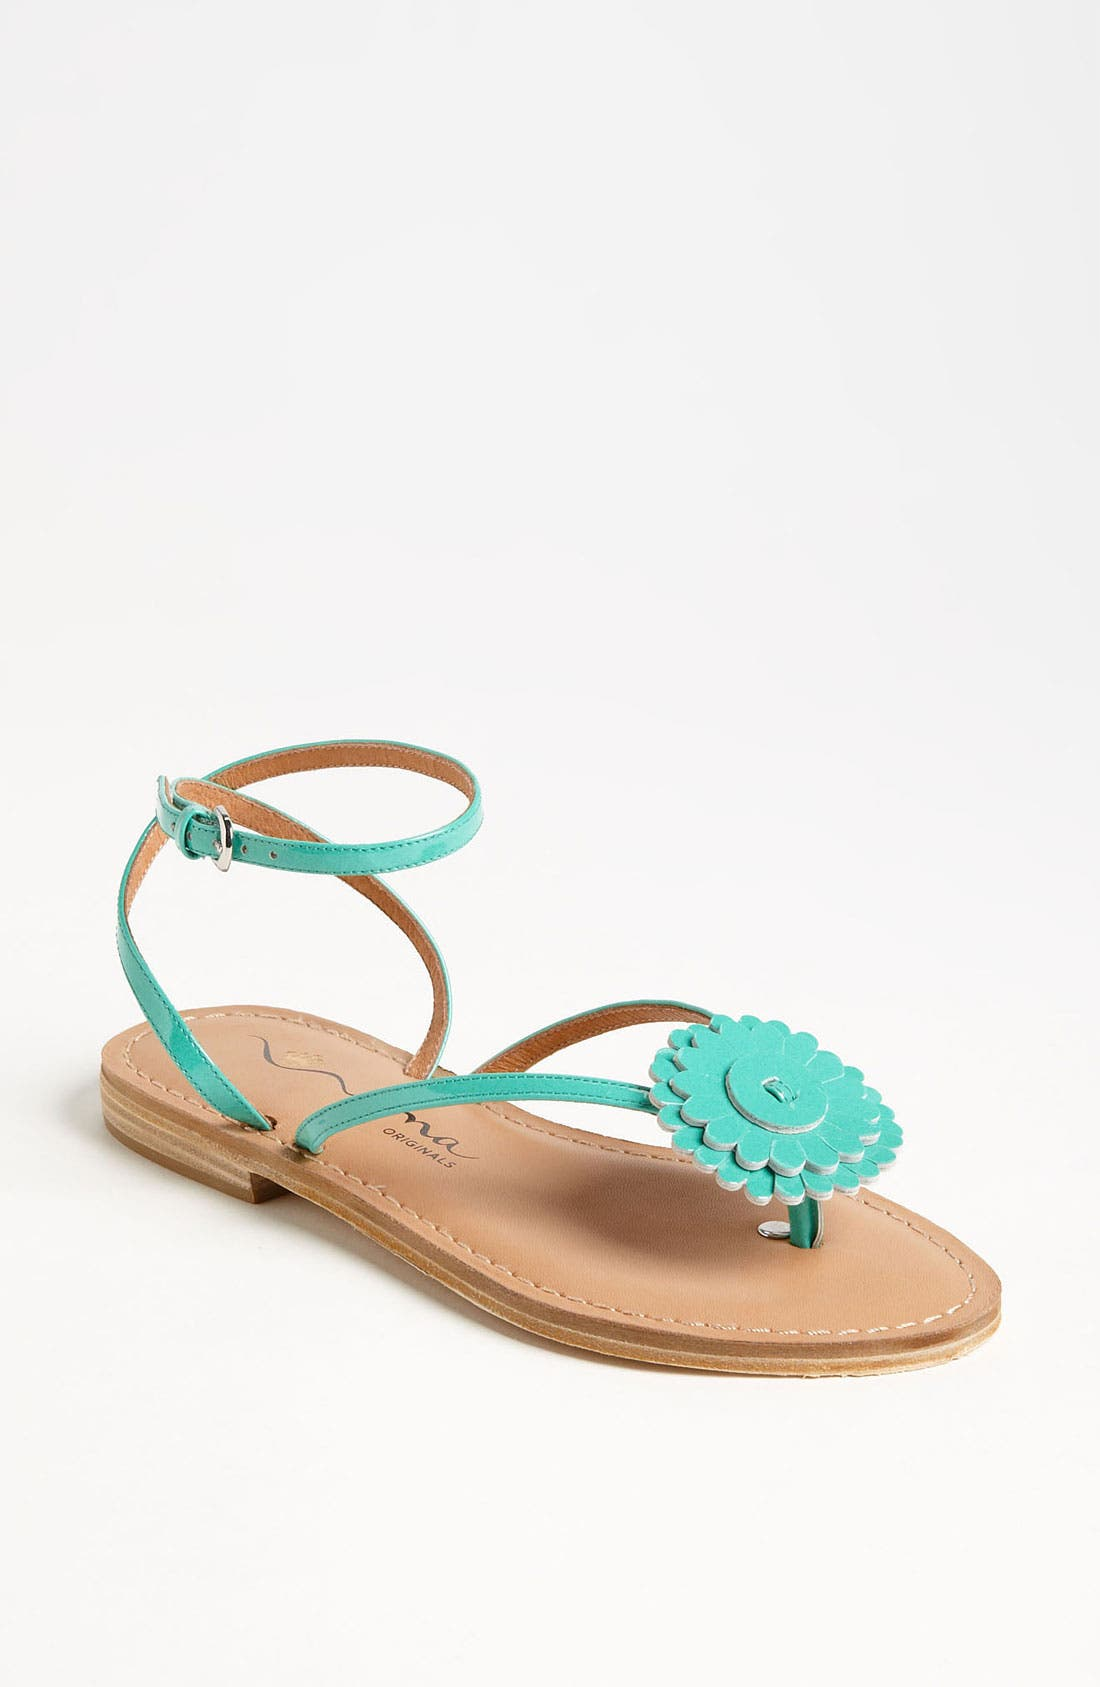 Alternate Image 1 Selected - Nina Originals 'Ultra' Sandal